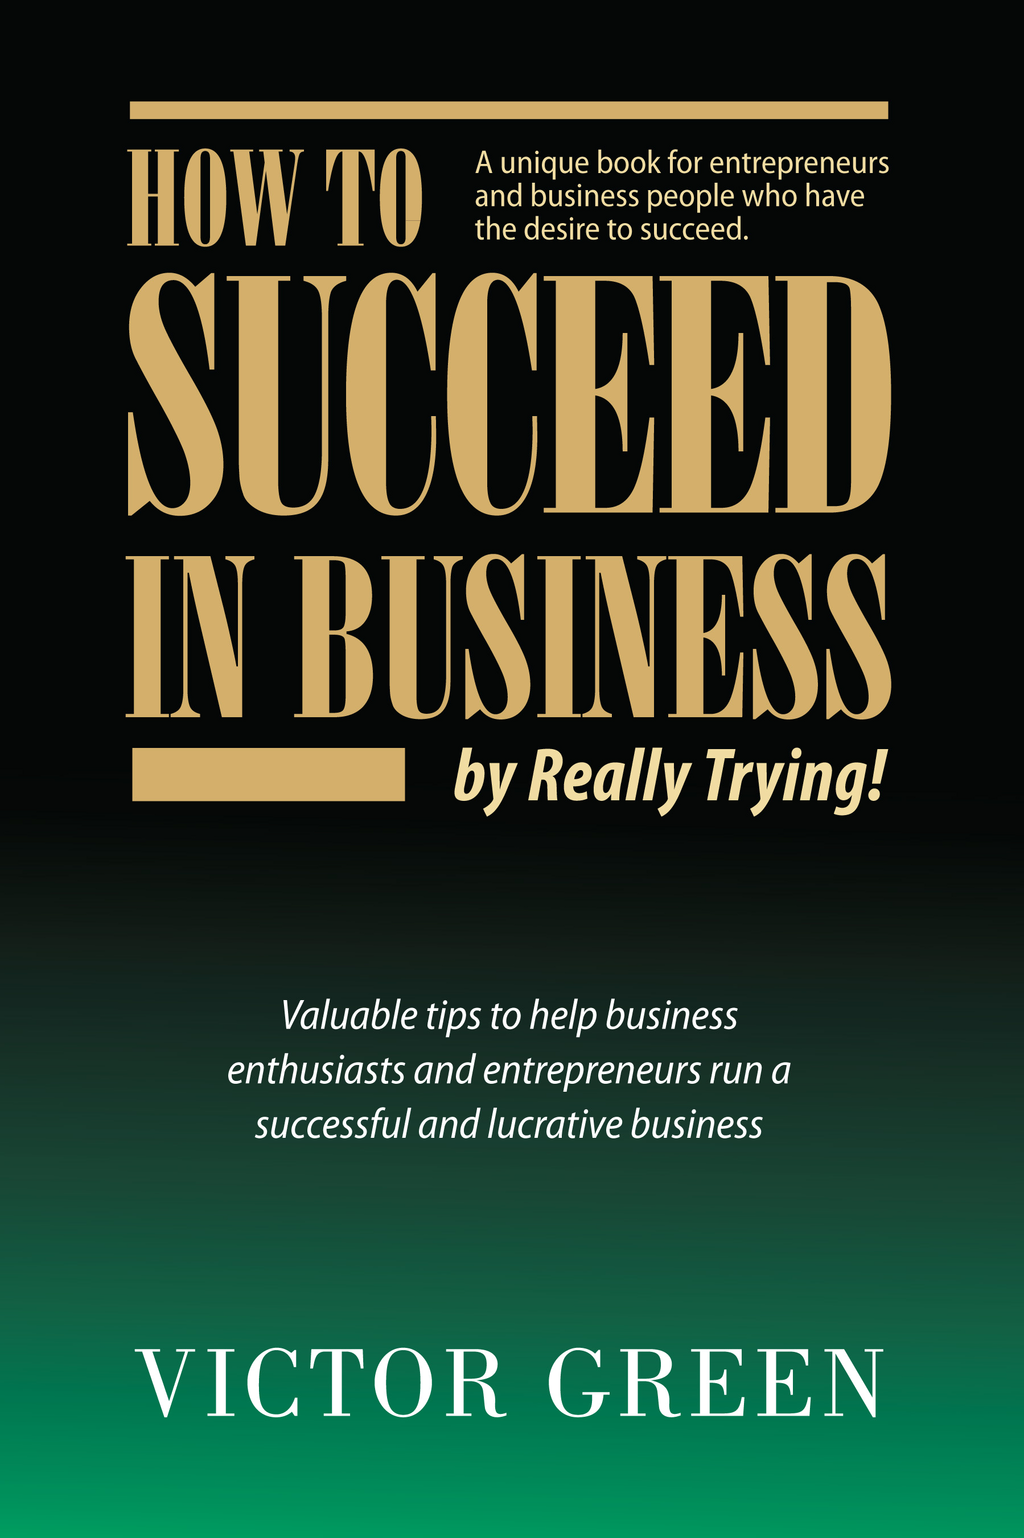 How to Succeed in Business: By Really Trying